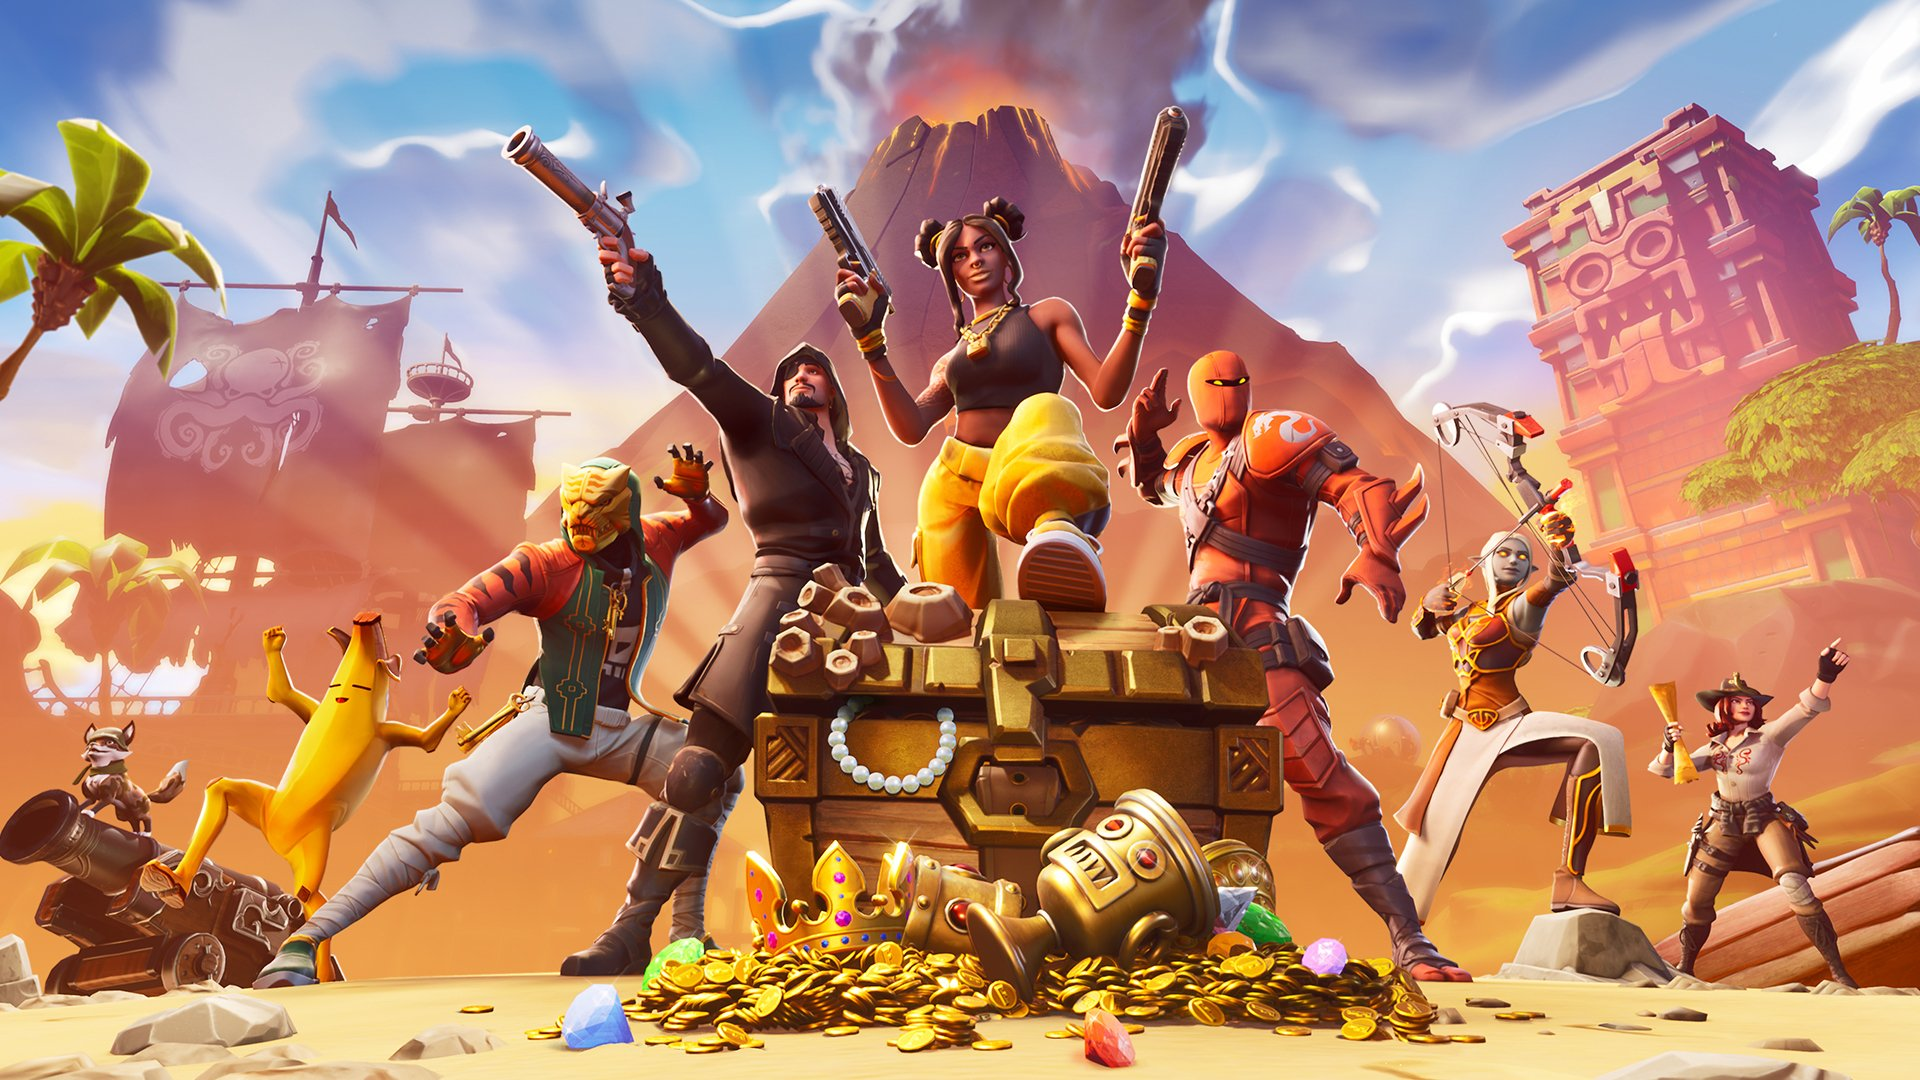 fortnite patch notes boom bow sniper shootout and more - more fortnite